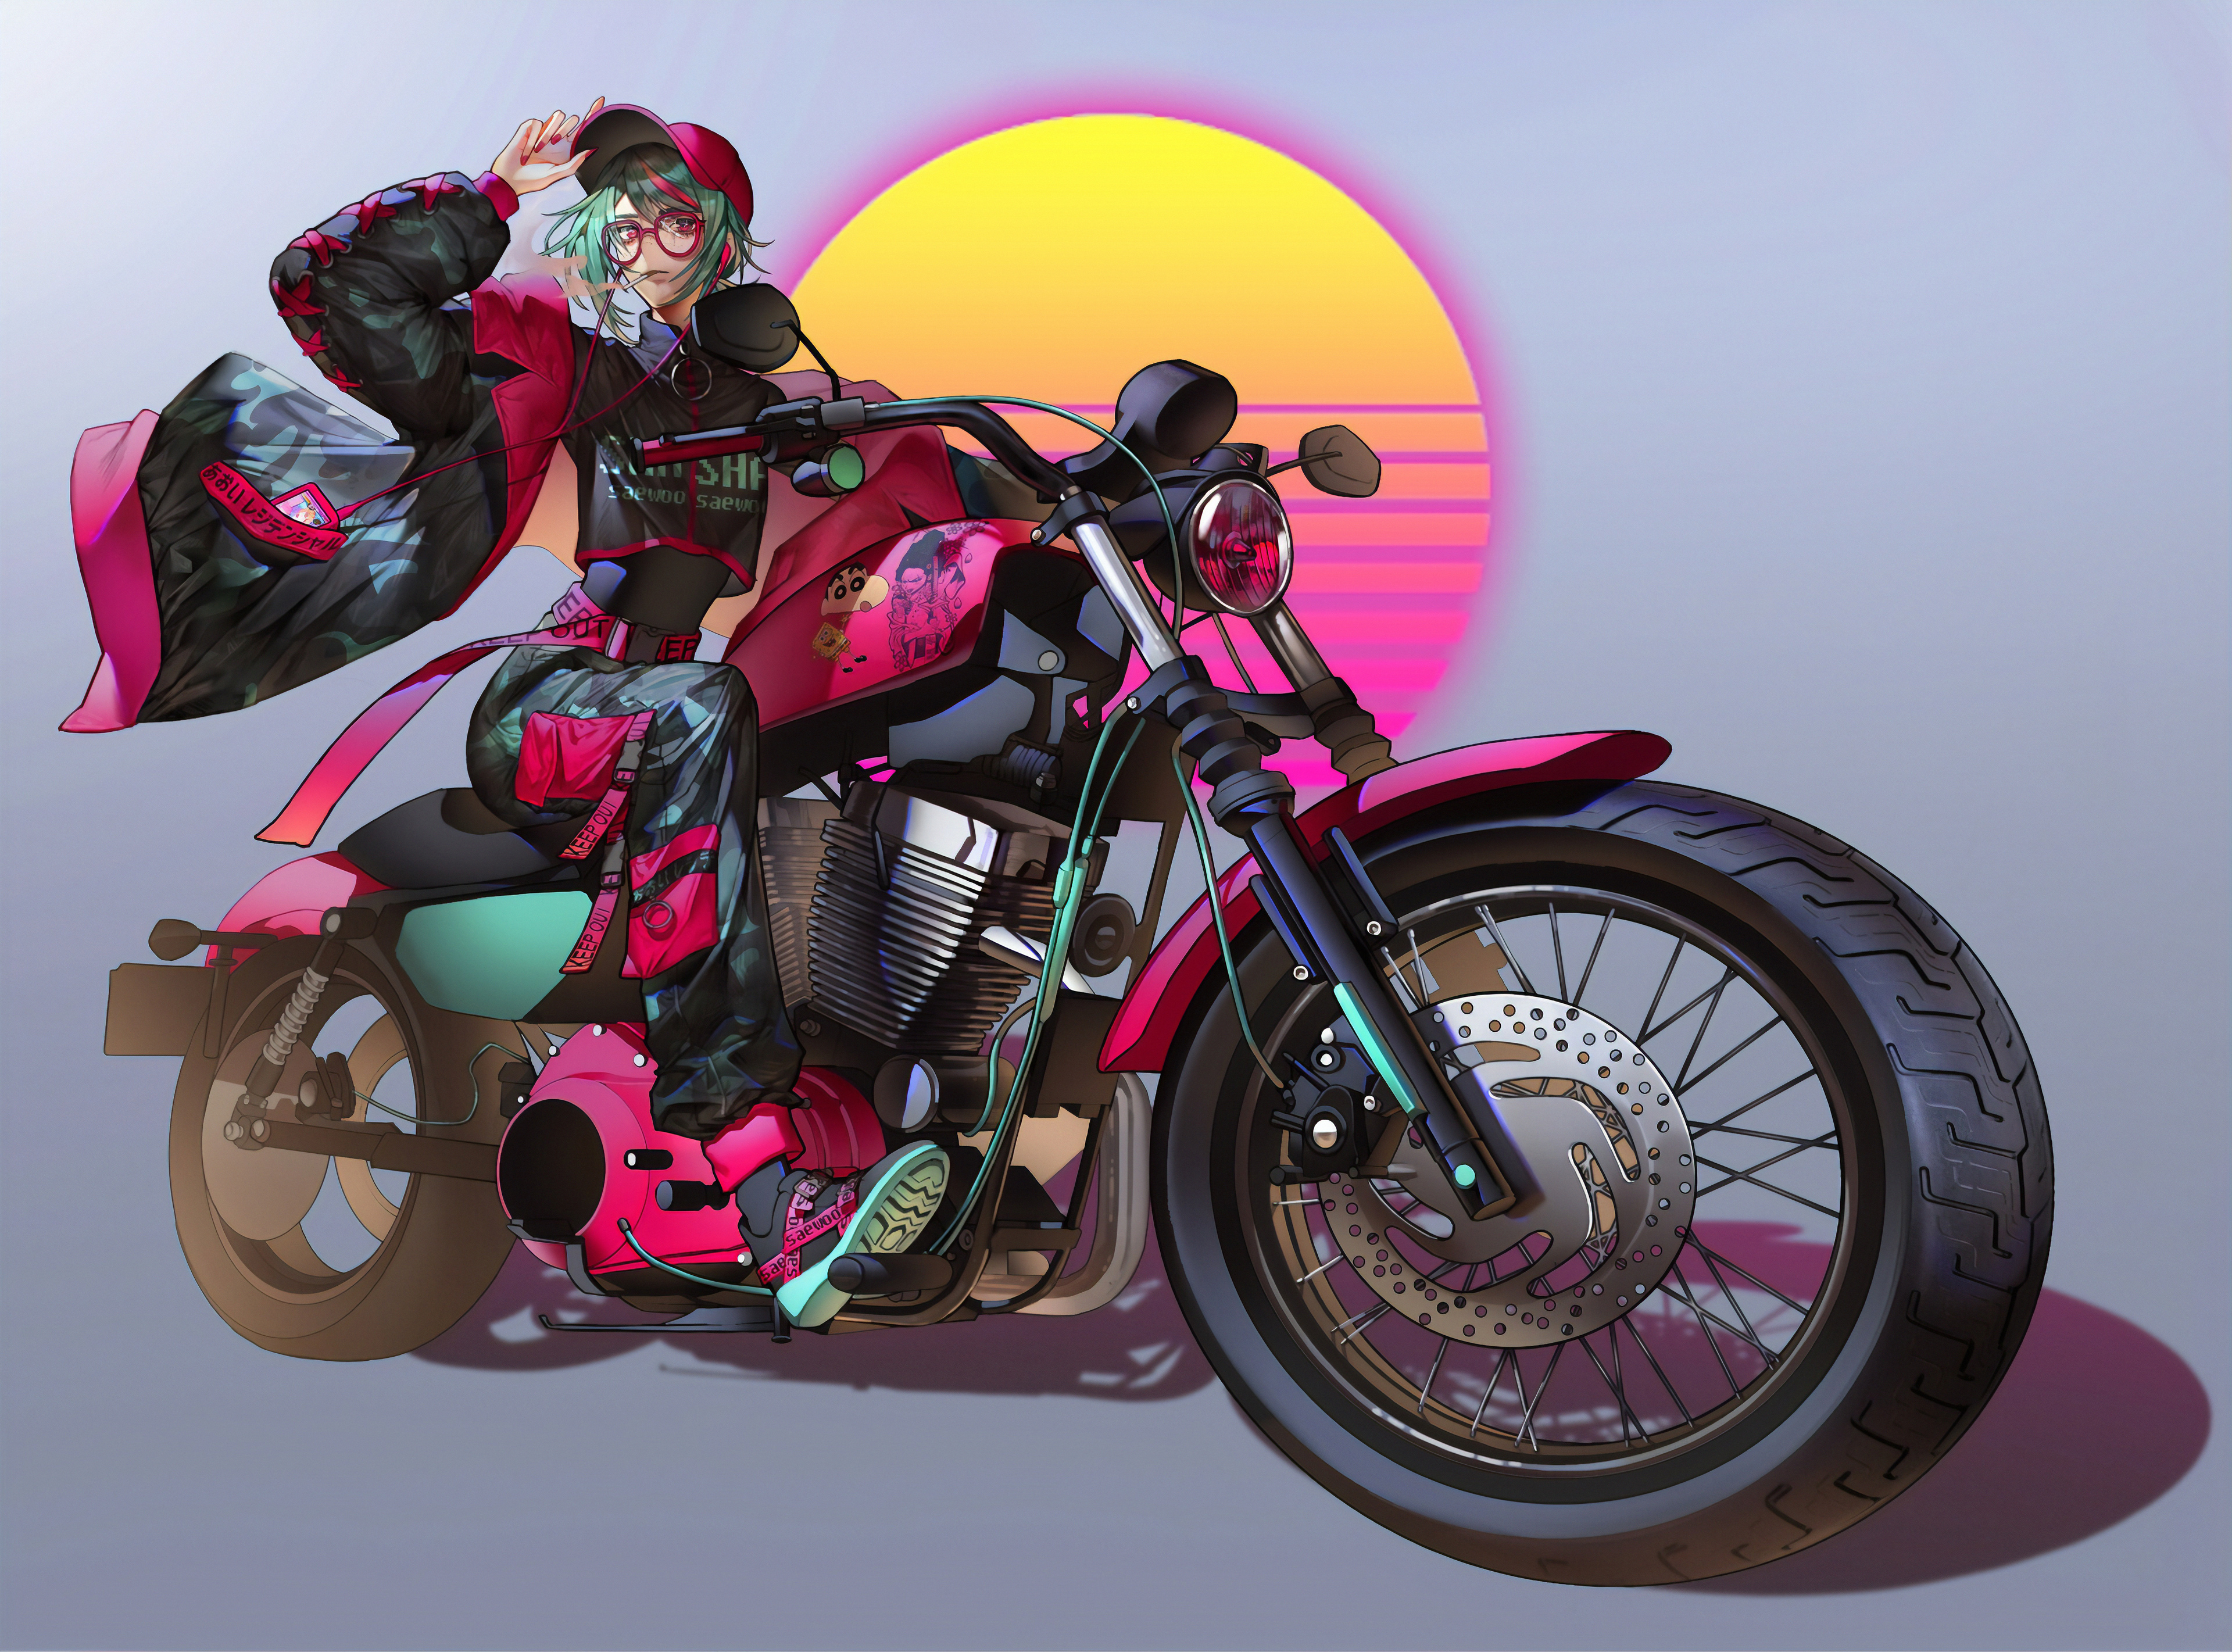 1280x1024 Anime Girl On Bike Art 4k 1280x1024 Resolution Hd 4k Wallpapers Images Backgrounds Photos And Pictures